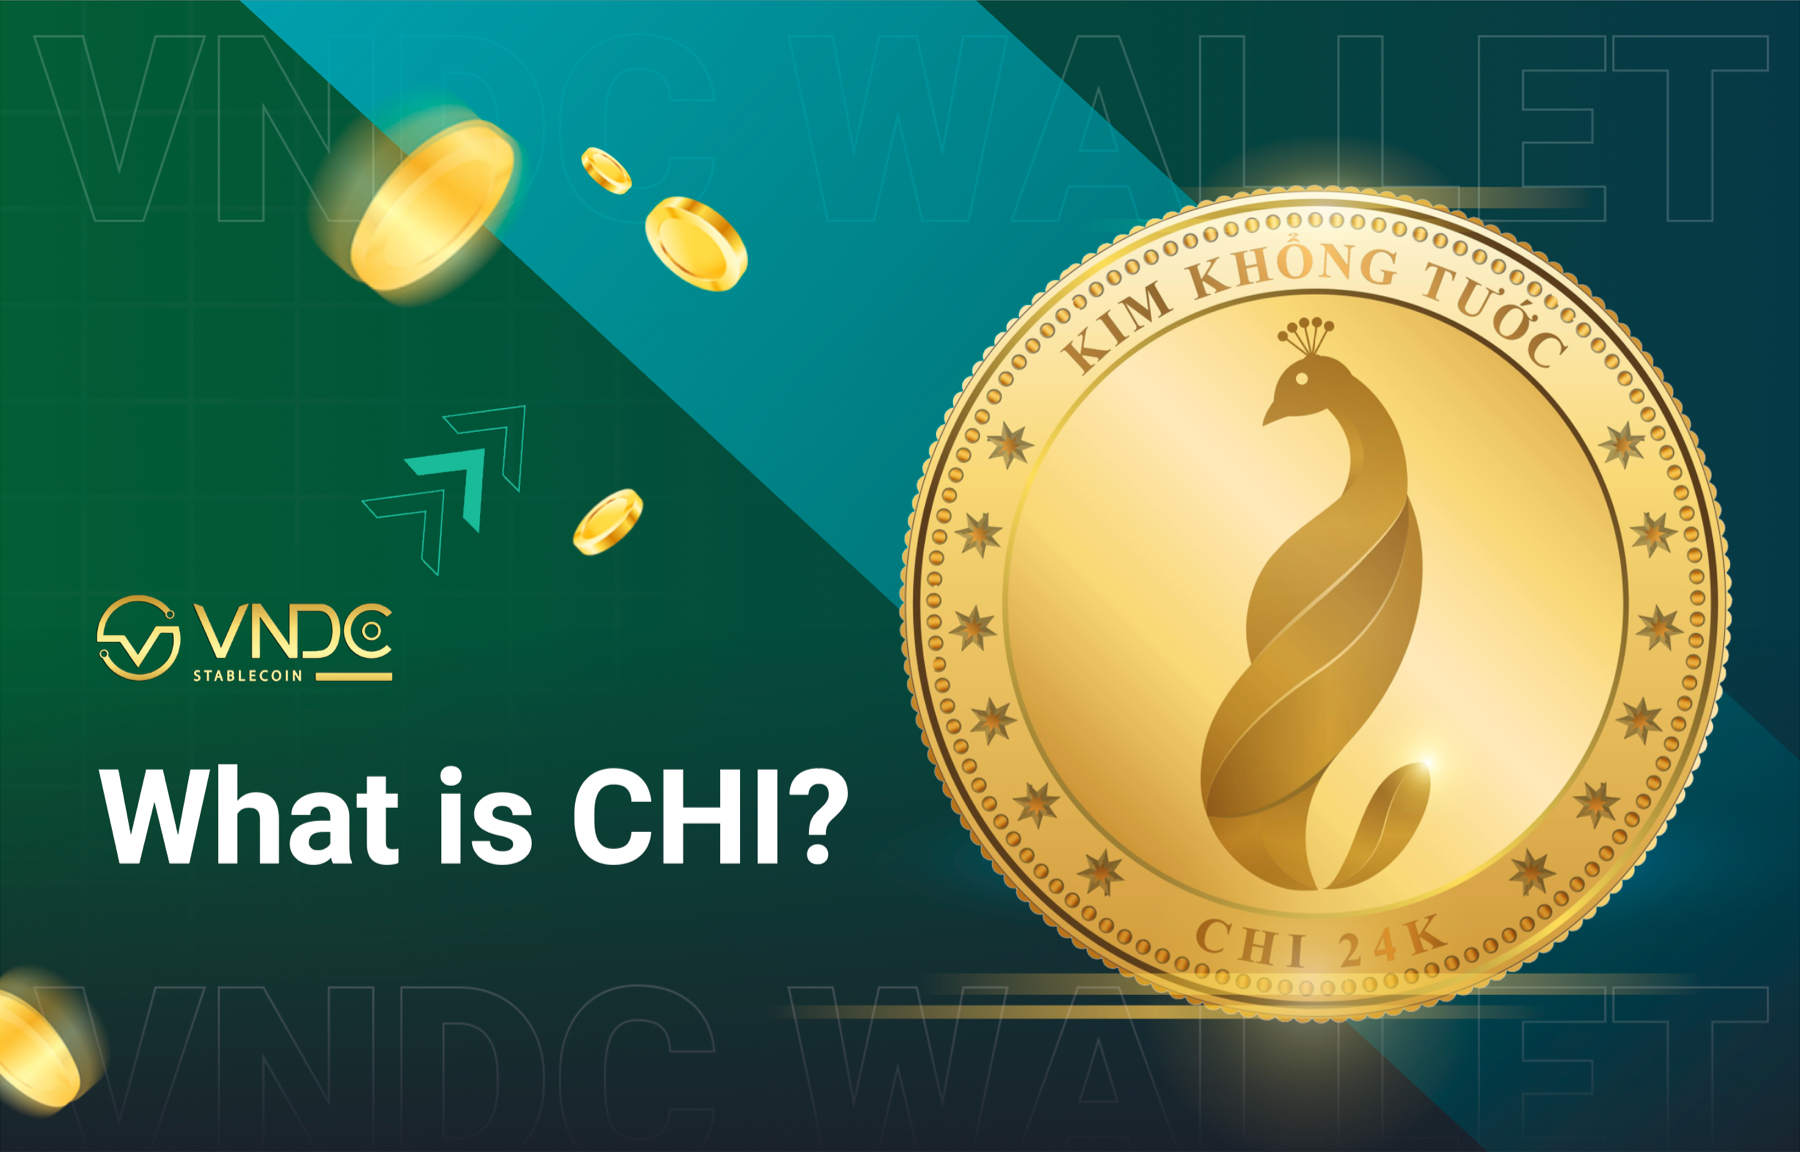 What is the Vietnam Gold Token (CHI)?